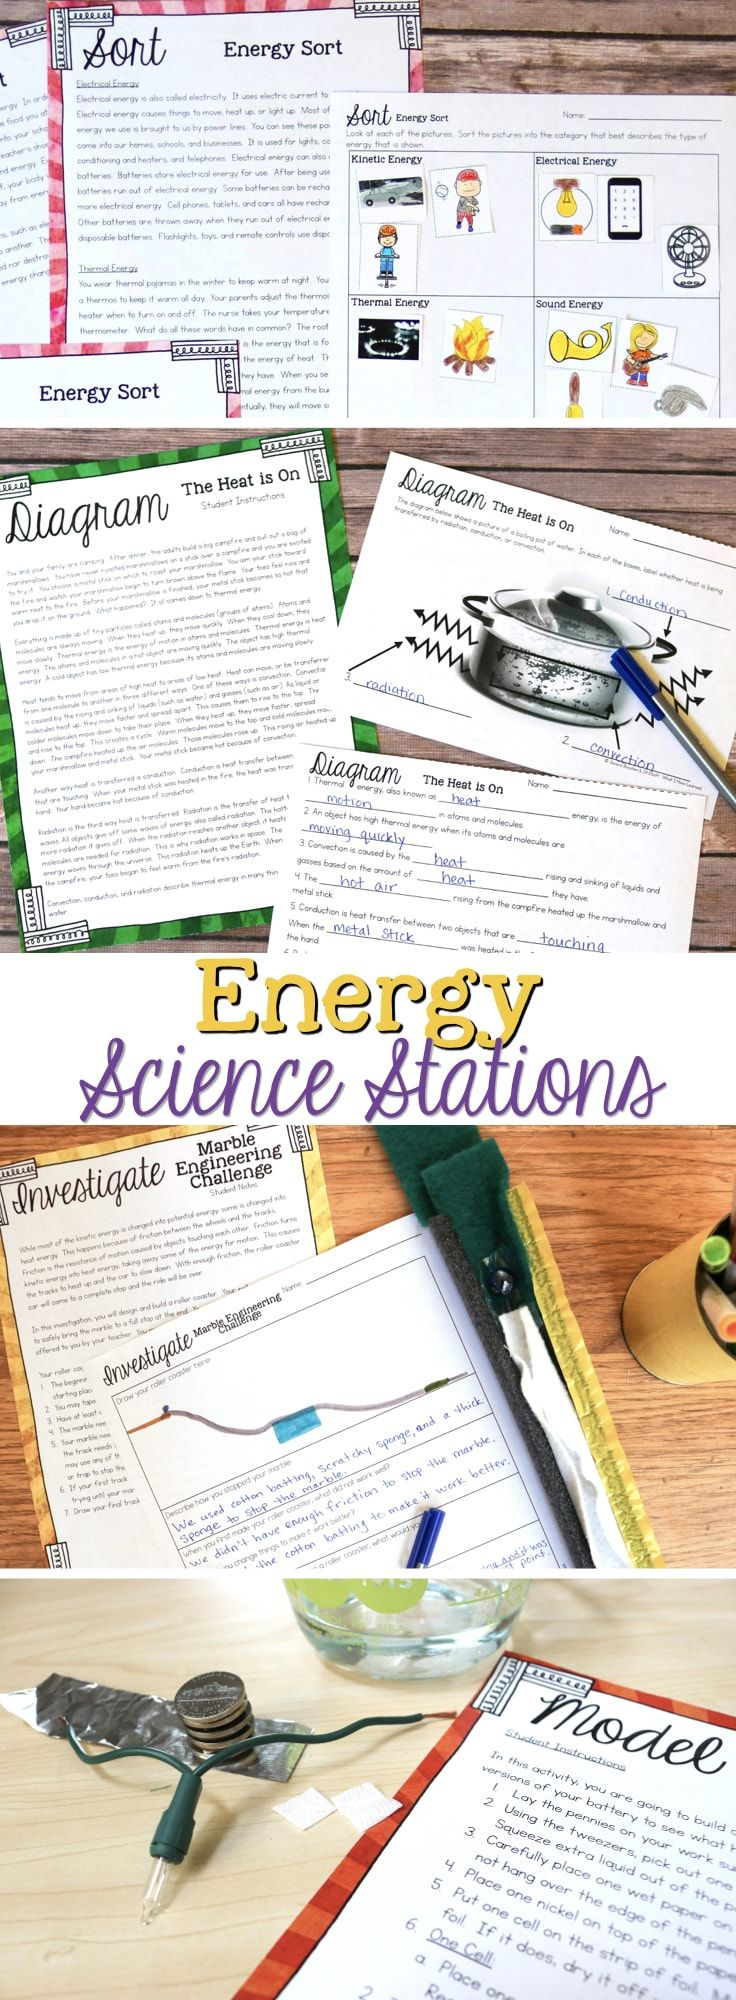 Energy Science Stations that help students gain a robust understanding of energy, energy transfer, and conservation of energy.  Includes a variety of energy science activities.